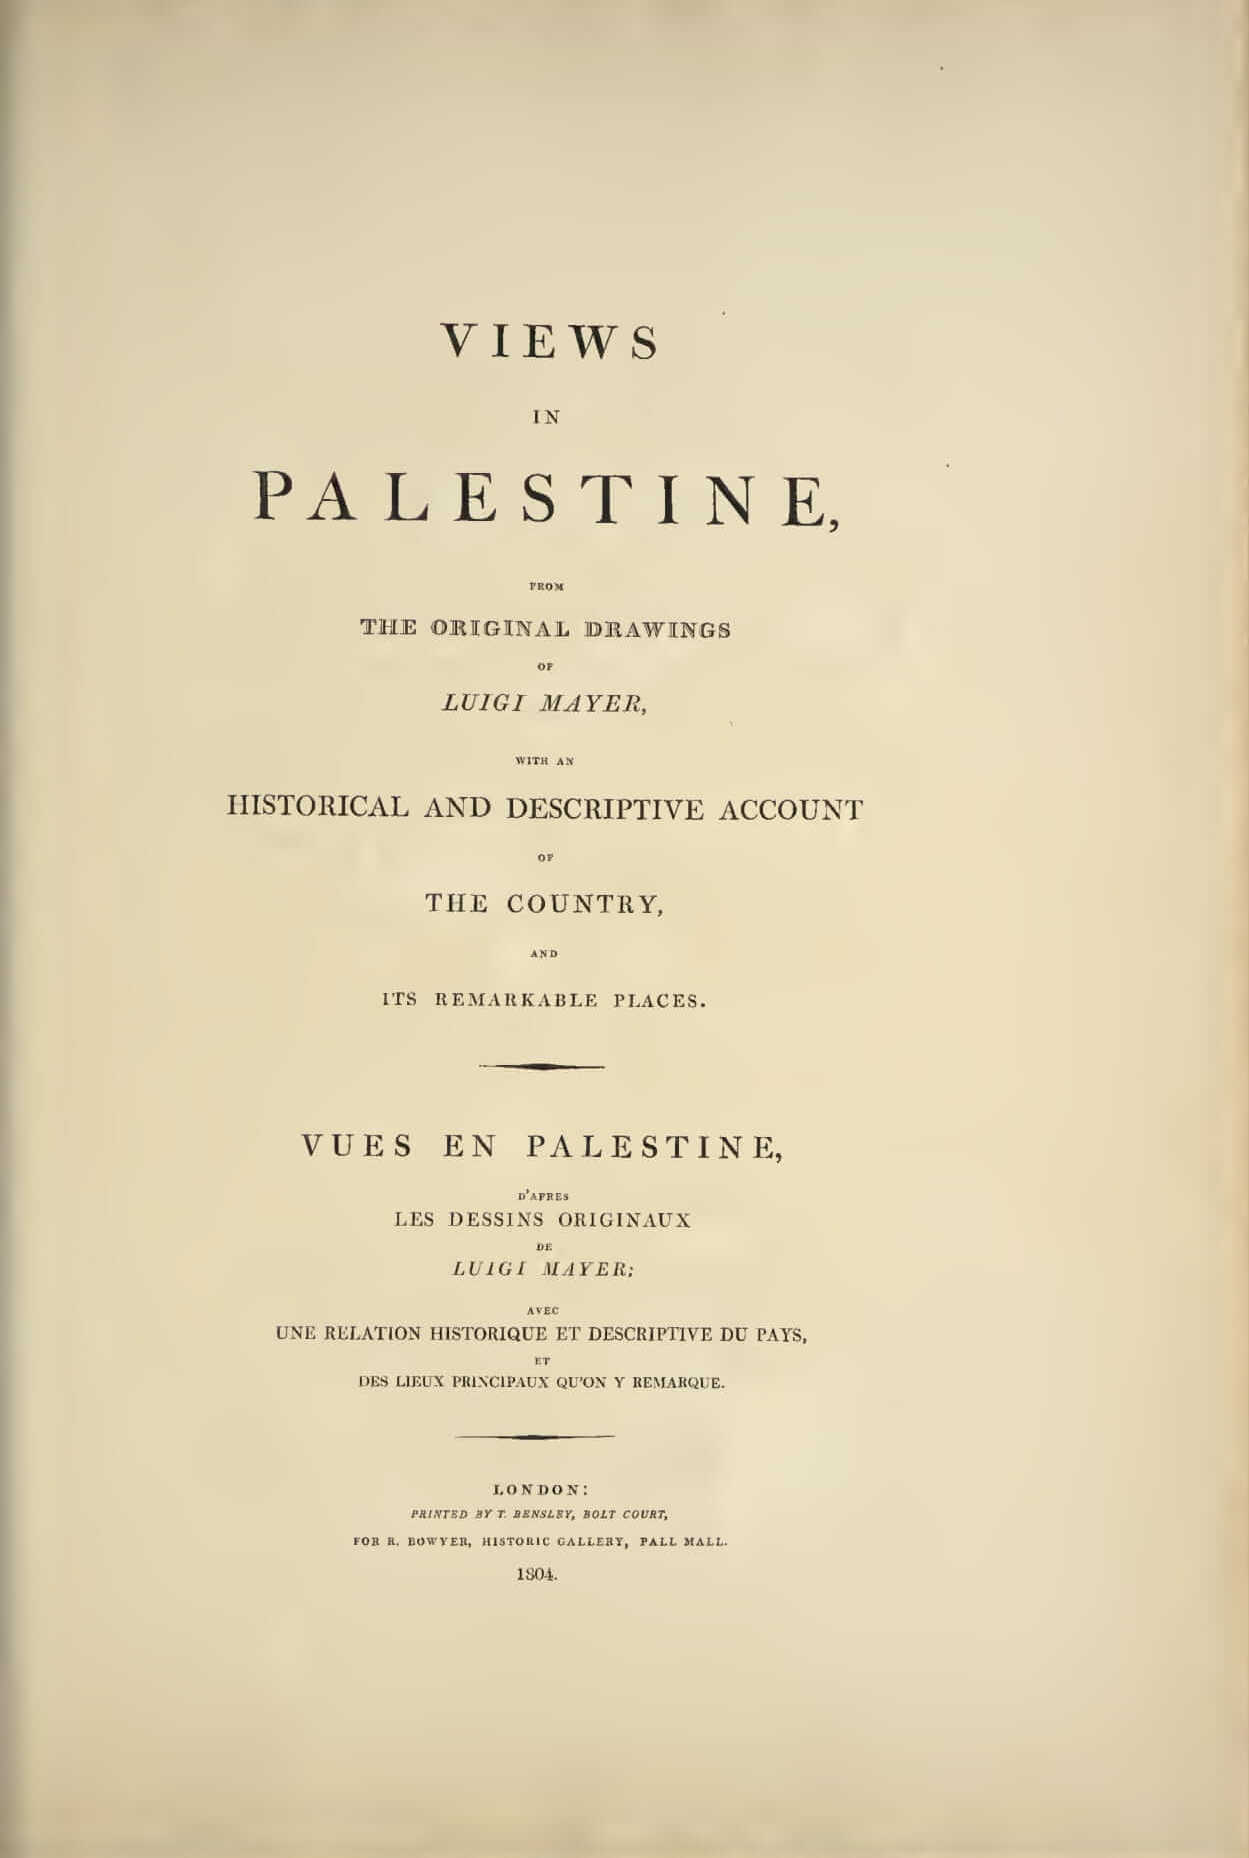 Views in Palestine (1804)